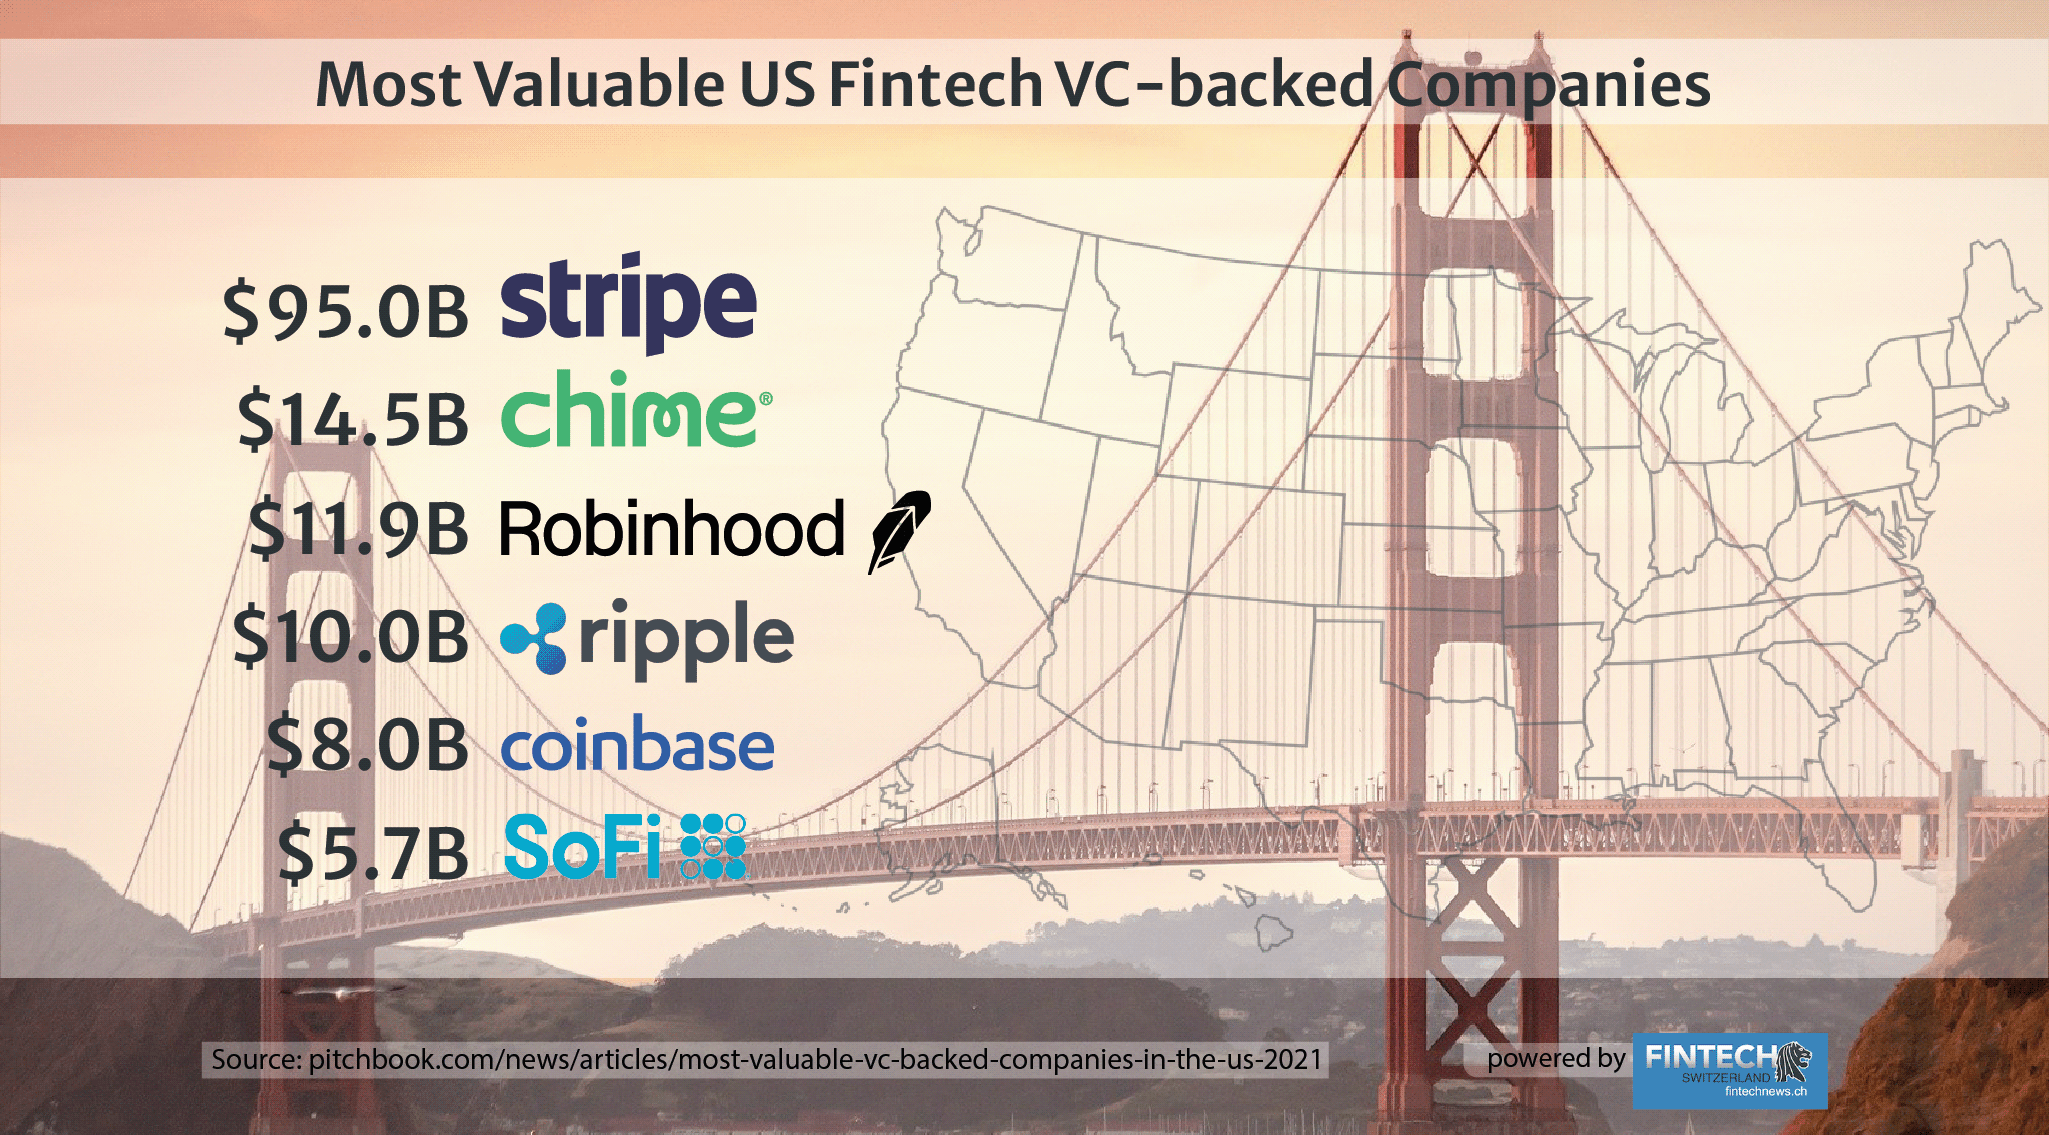 Most Valuable VC-Backed Fintech Companies in the US